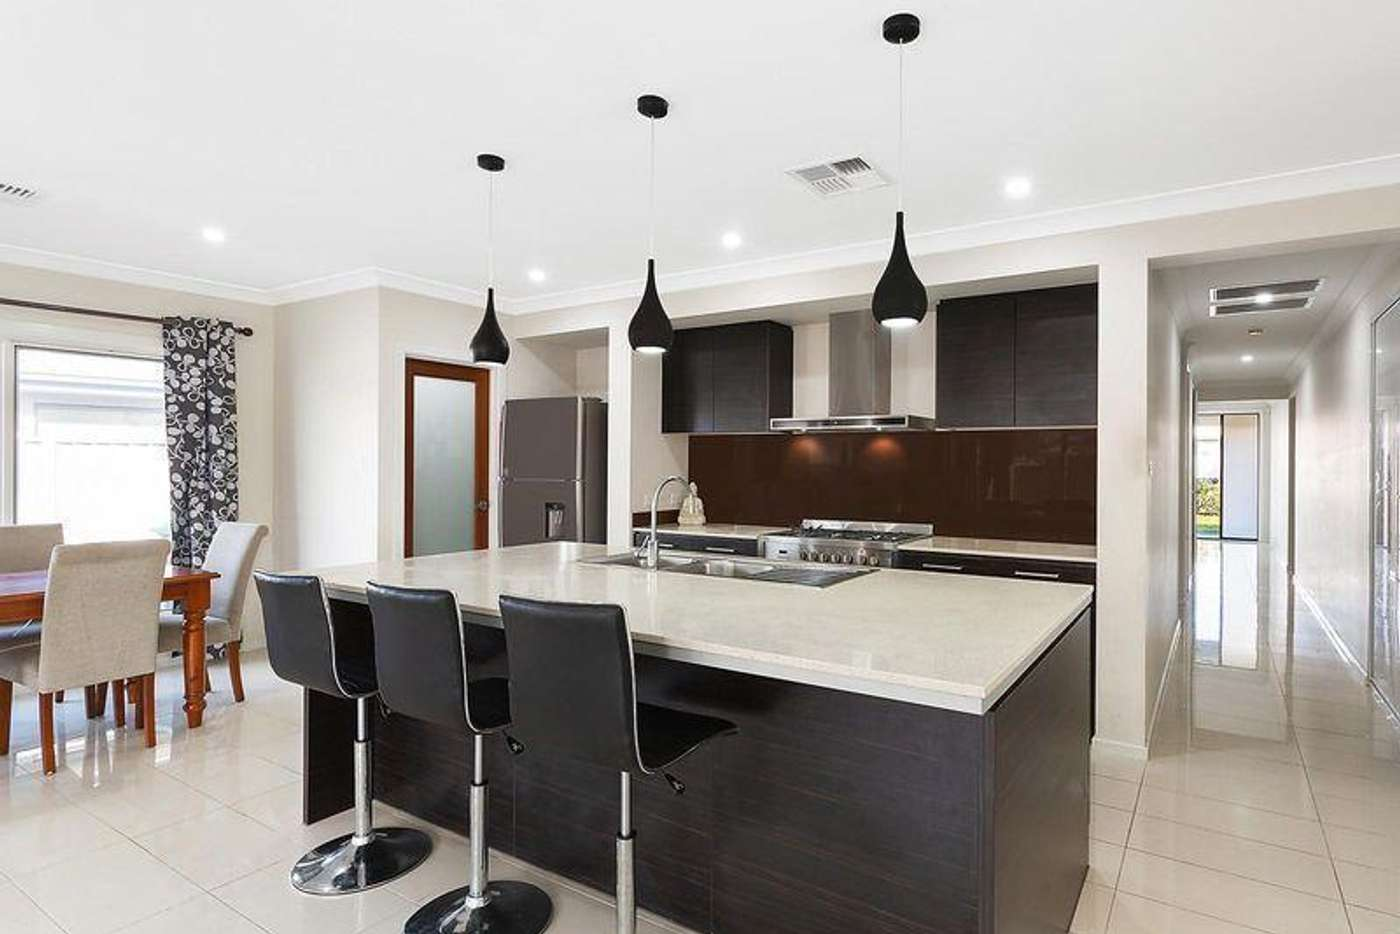 Main view of Homely house listing, 6 Maize Avenue, Spring Farm NSW 2570